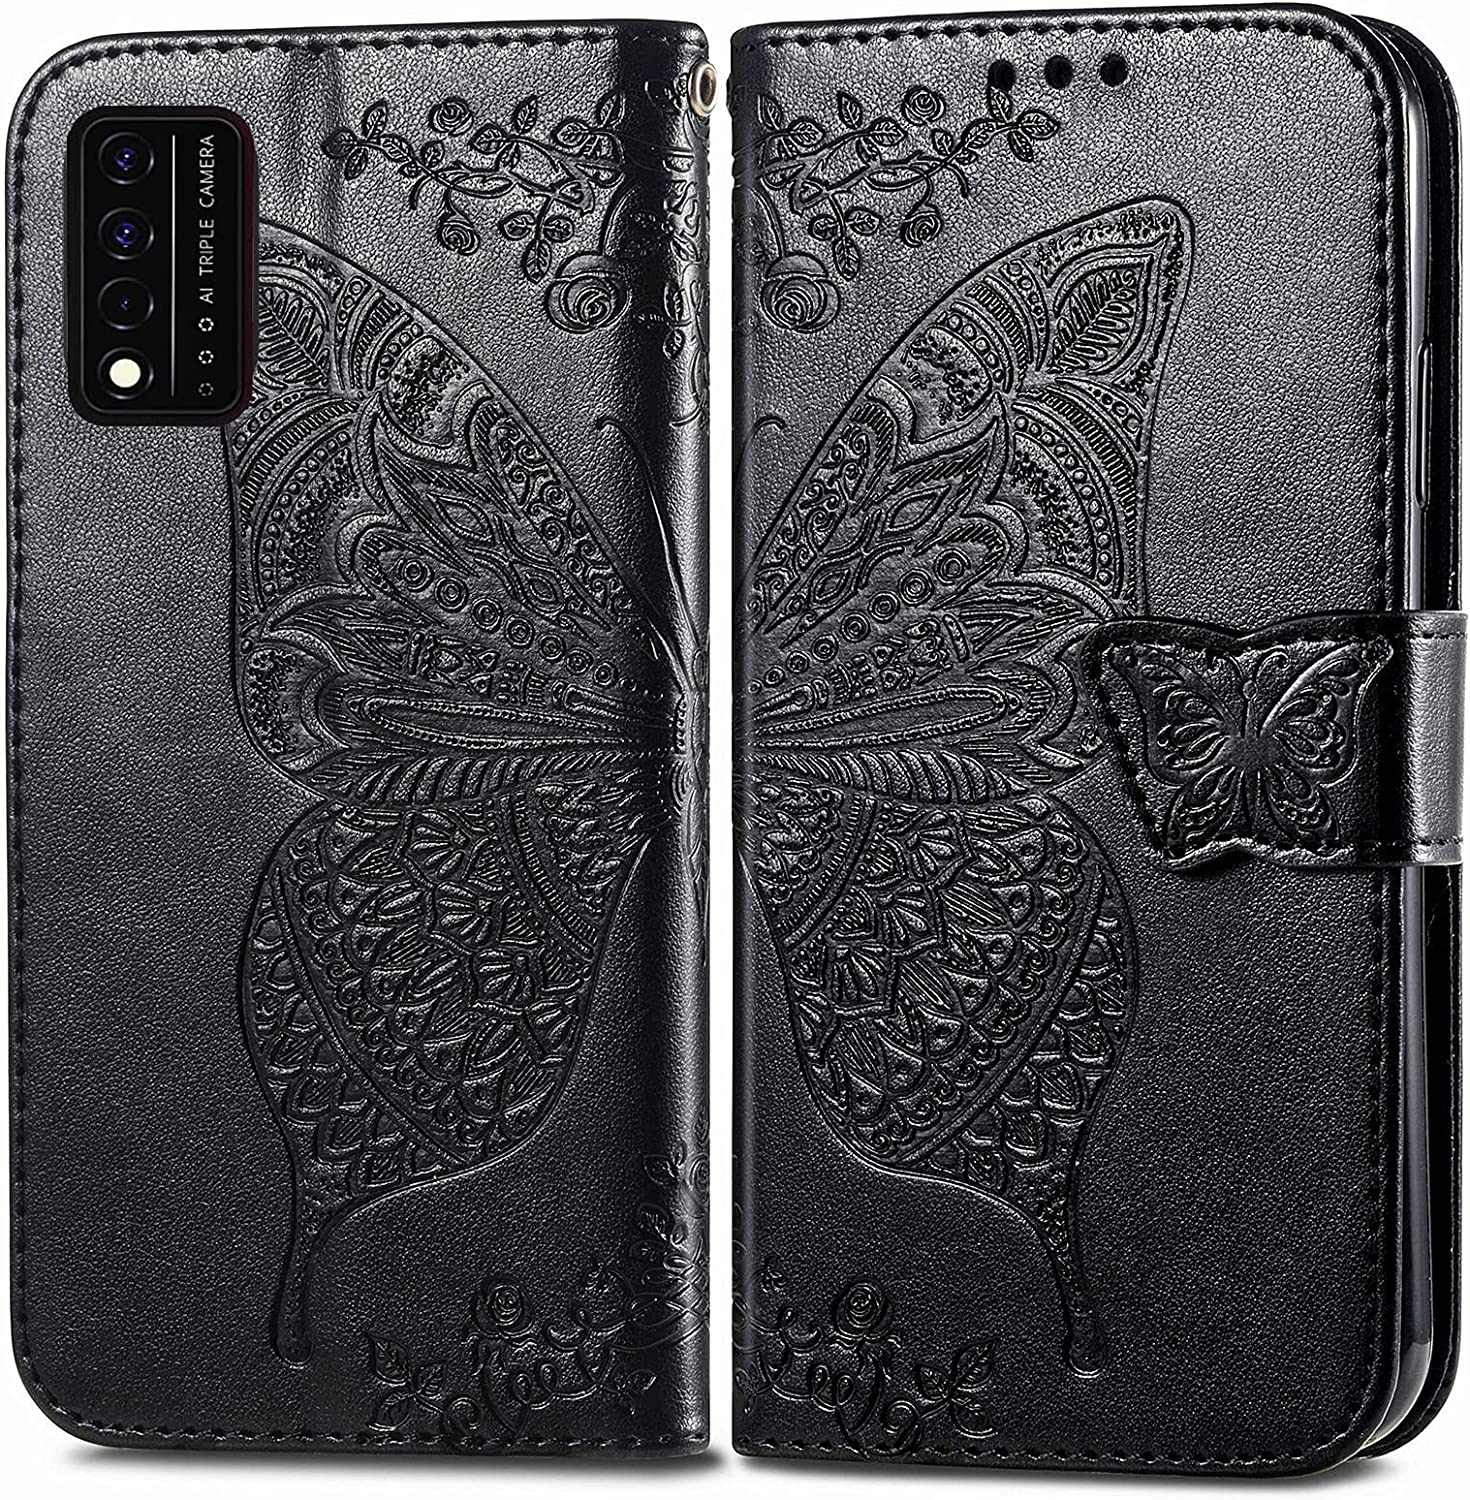 DAMONDY Case for T-Mobile Revvl V Plus 5G,PU Leather Butterfly Embossed Flowers Magnetic Flip Cover Stand Card Holders Hand Strap Wallet Purse Case for T-Mobile Revvl V Plus 5G -Black